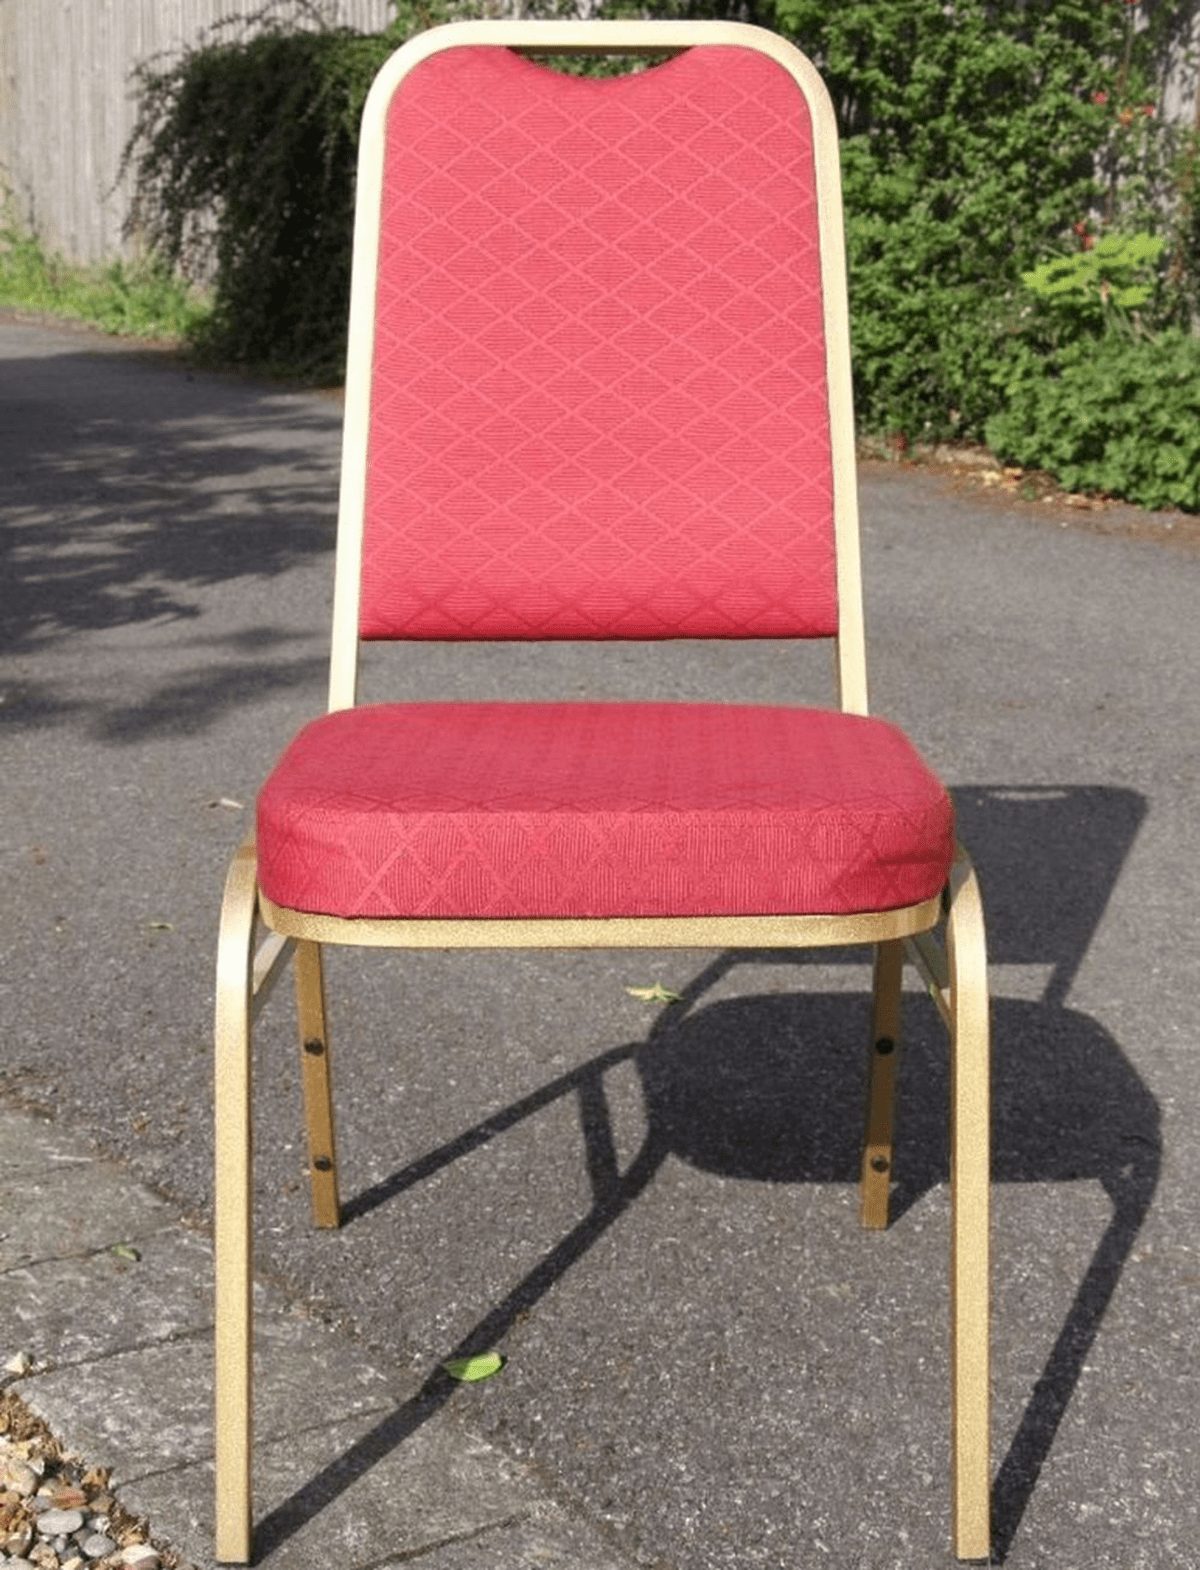 conference chairs for sale travel chair stool secondhand and tables steel frame banqueting